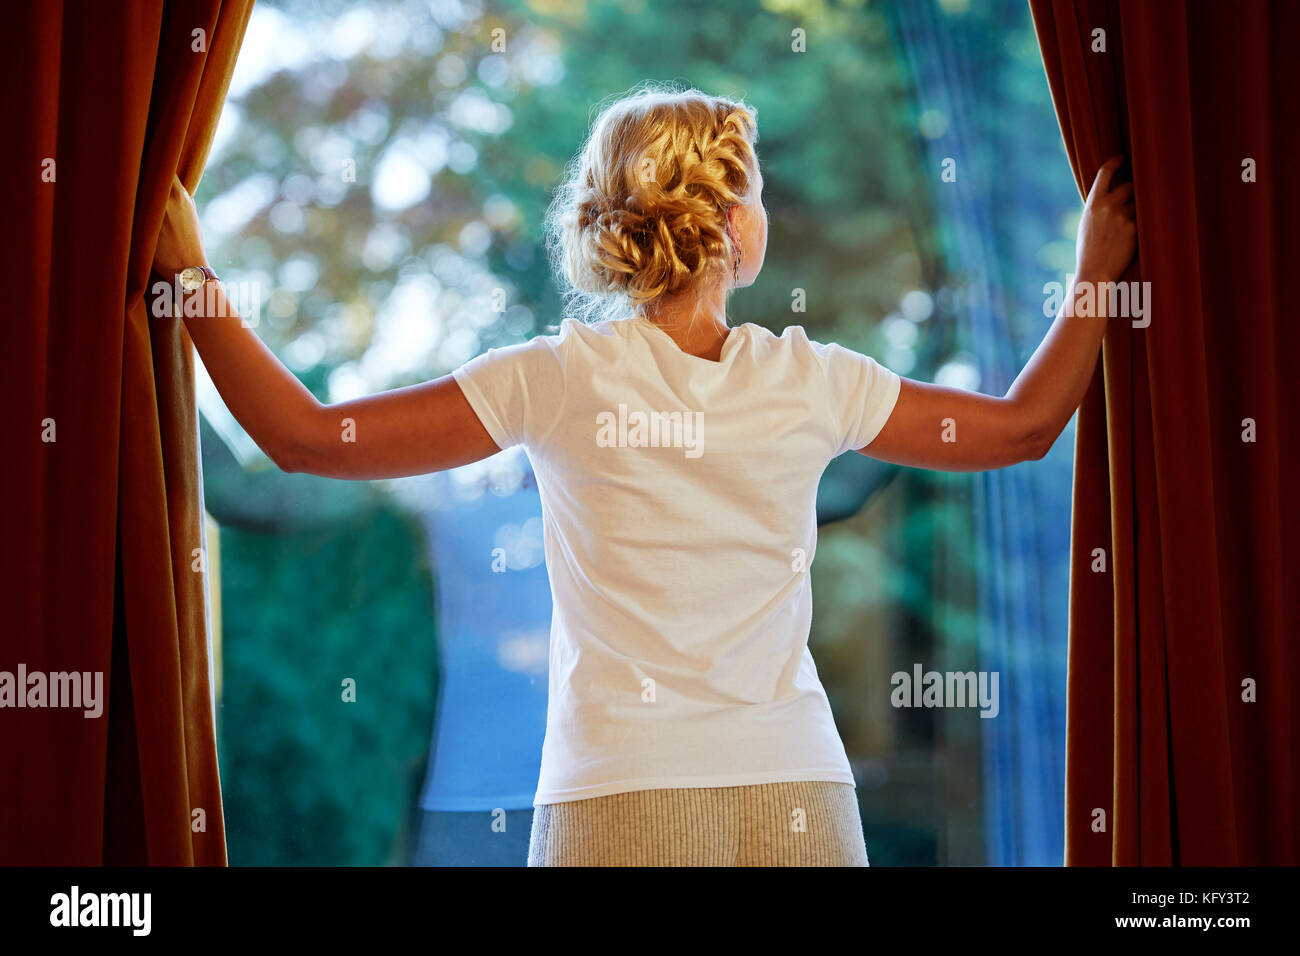 Woman opening curtains - Stock Image